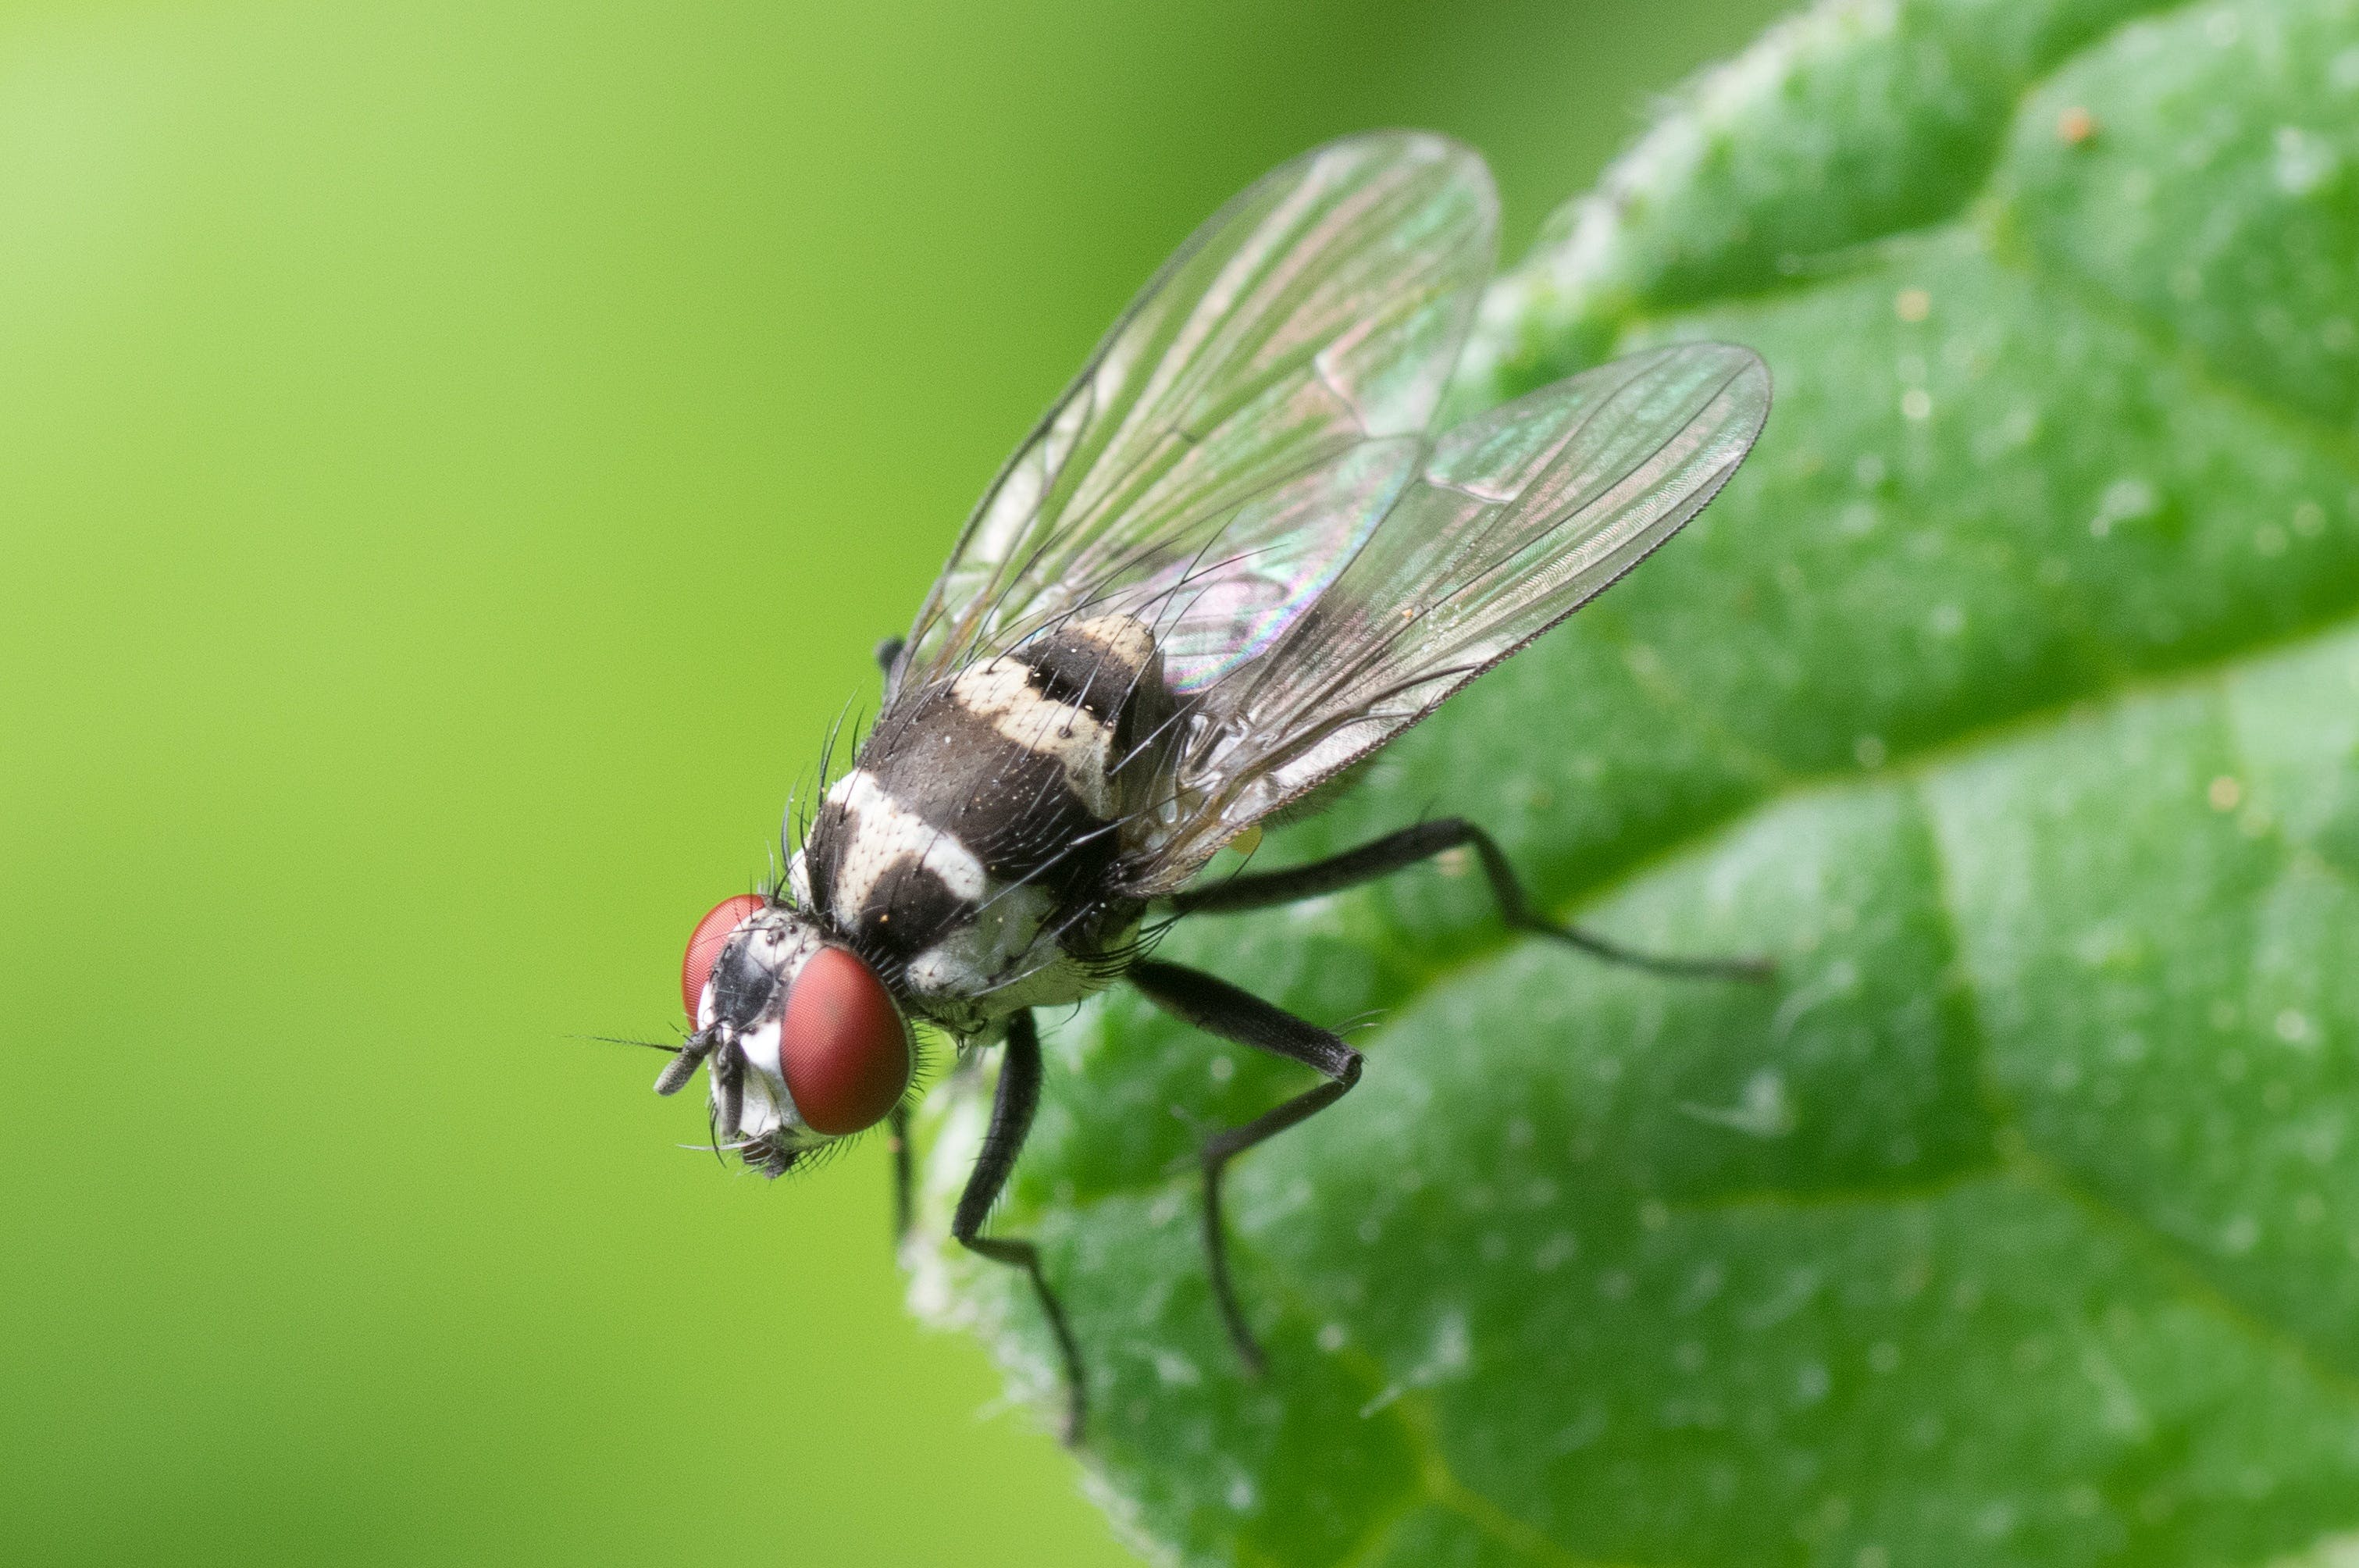 Black and Red Flying Insect Perched on Green Leaf